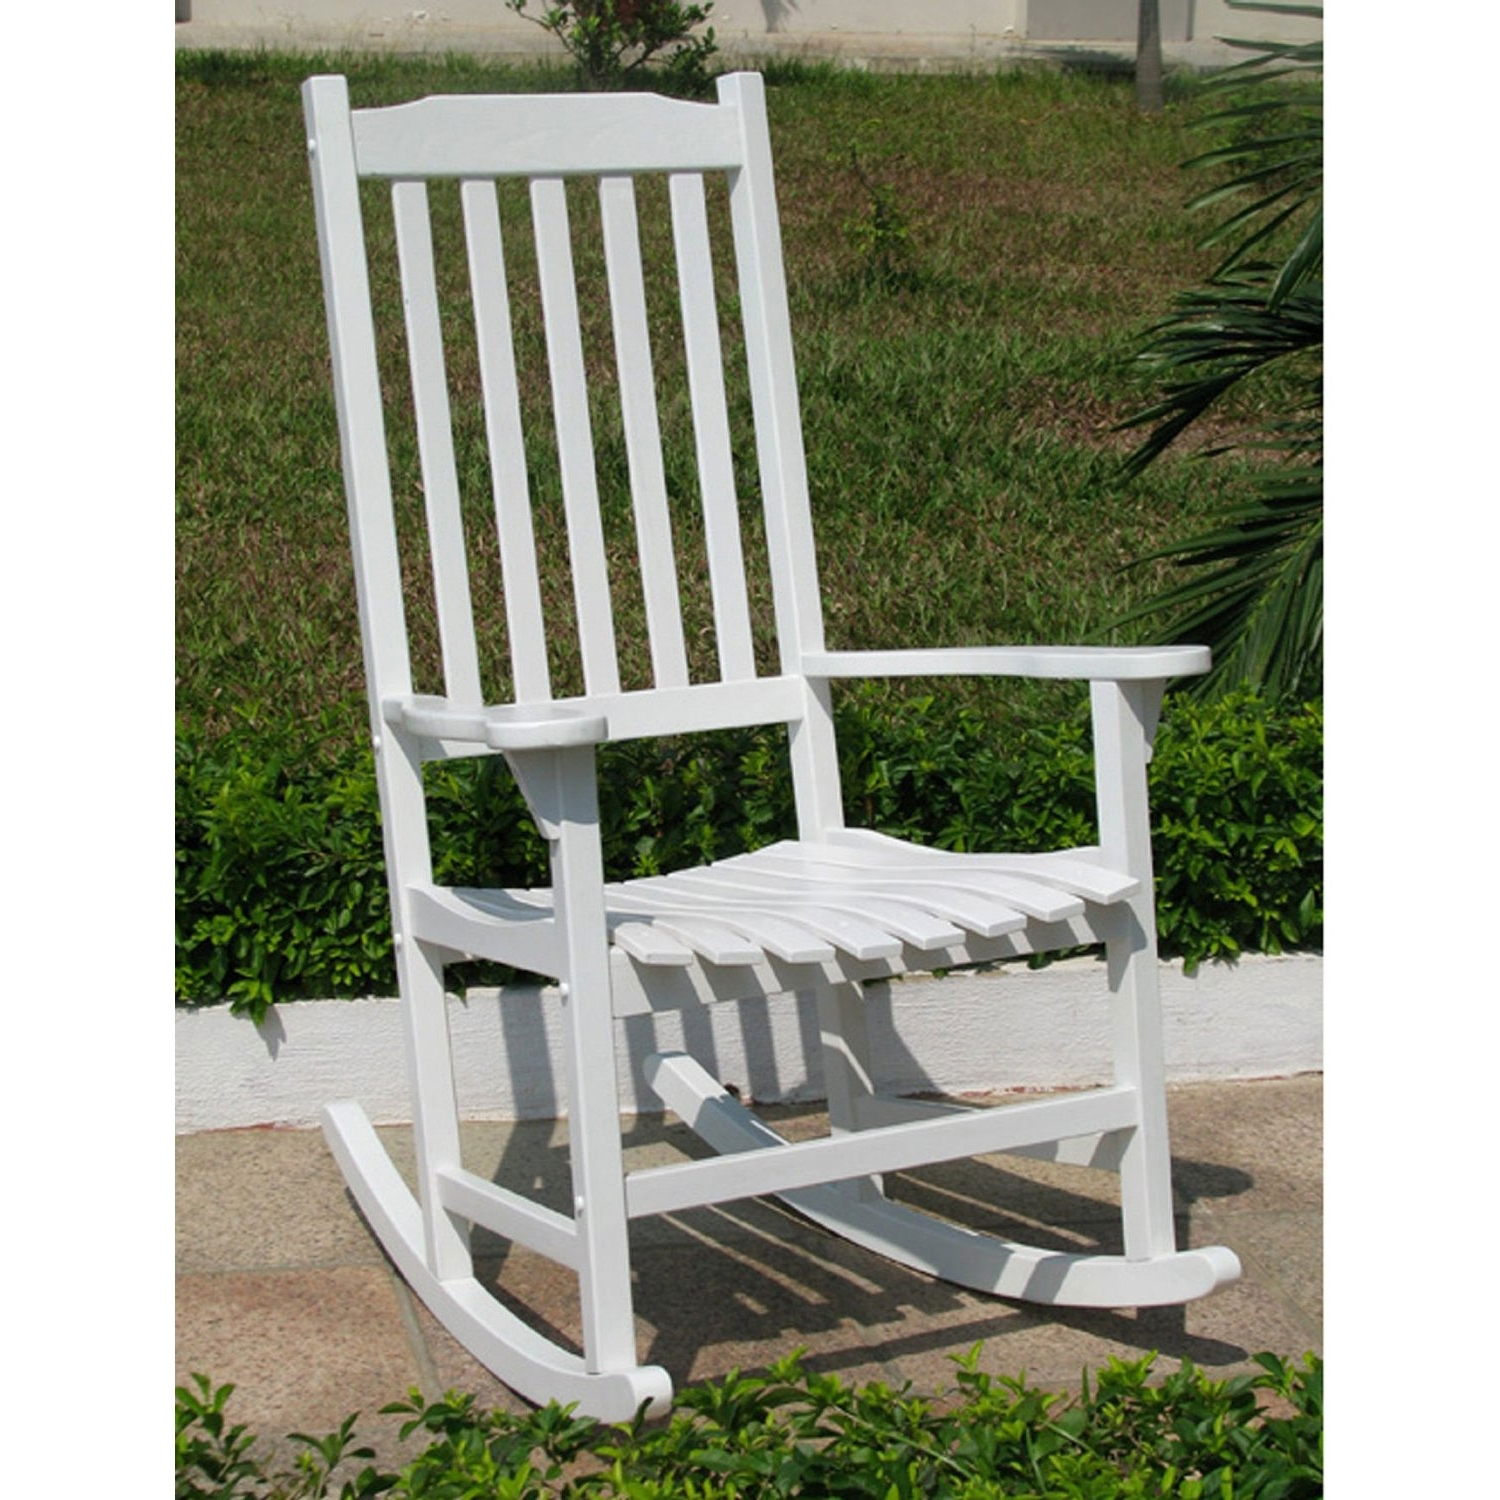 Inexpensive Patio Rocking Chairs With Famous Lovely Cheap Patio Chairs Semco Recycled Plastic Rocking Chair (Gallery 8 of 15)